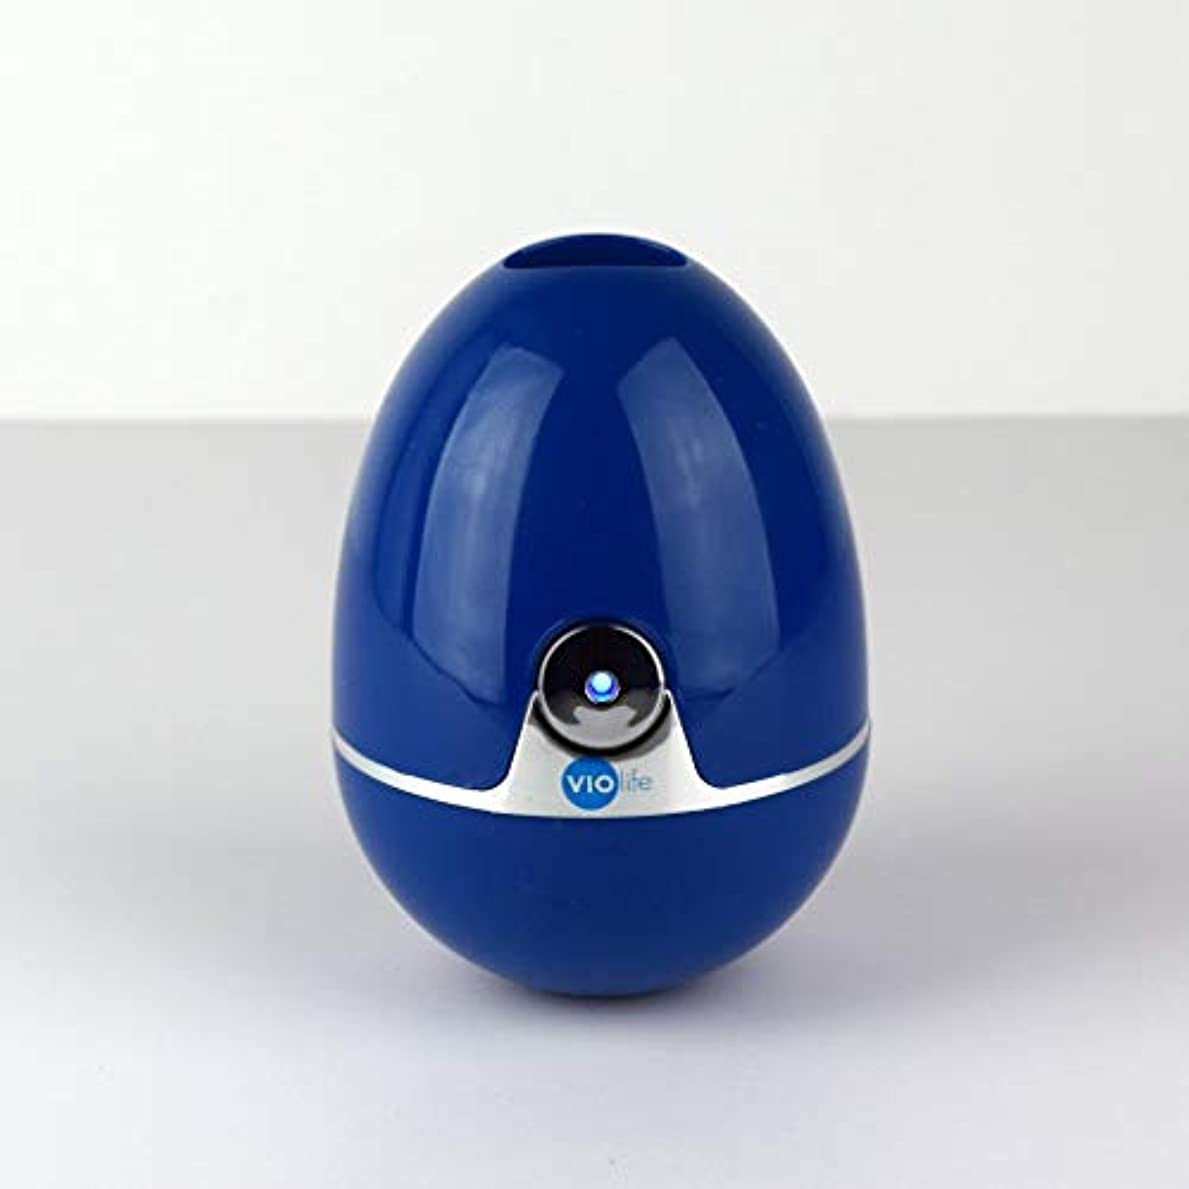 悲惨な考えるのヒープZapi luxe UV Toothbrush Sanitizer Cobalt Blue